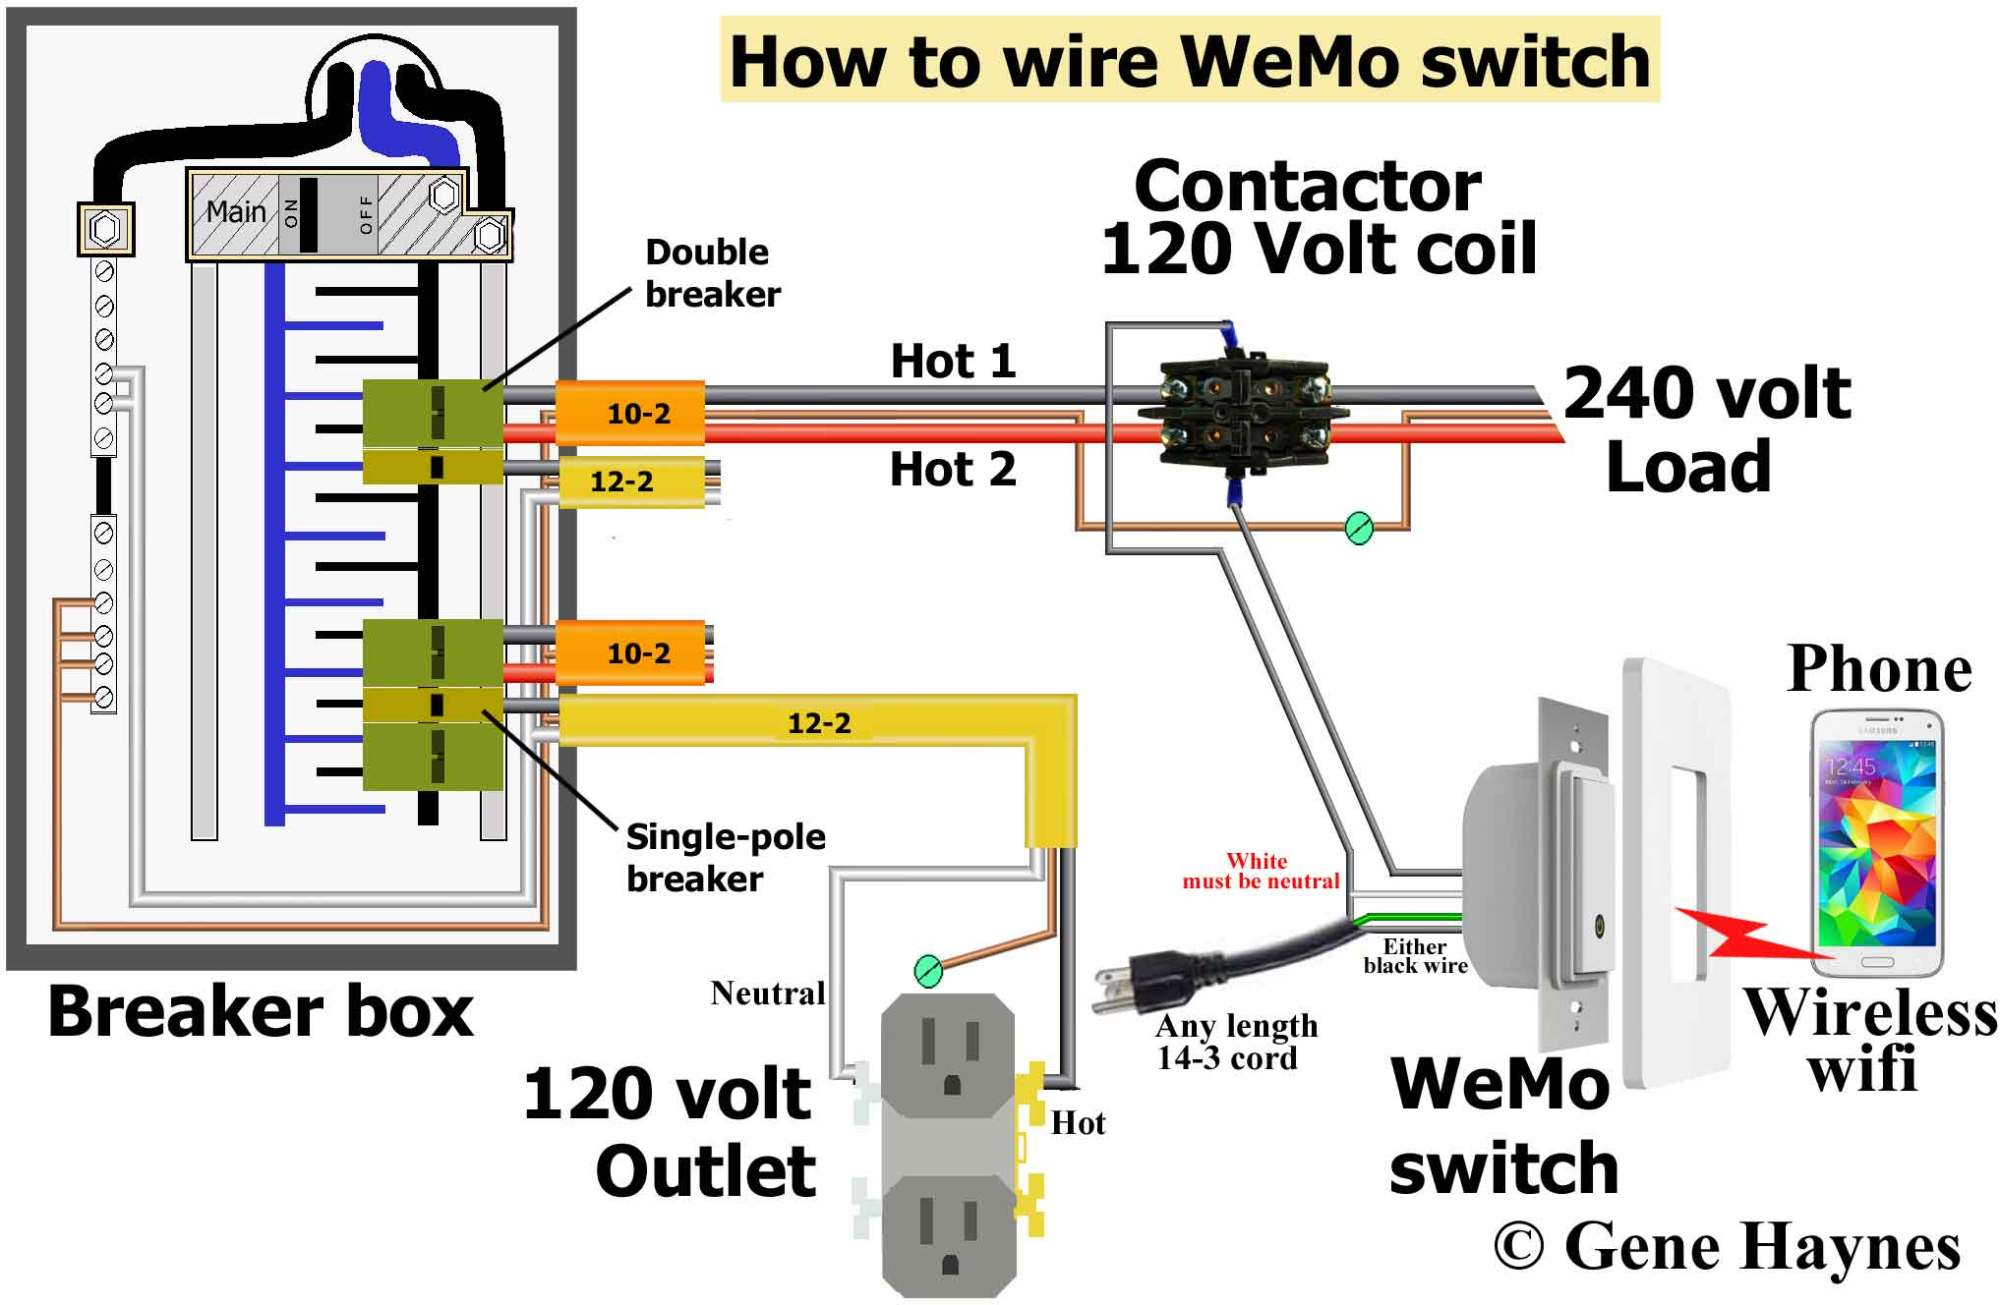 hight resolution of  how to wire wemo switch same as above except using extension cord instead of hardwire 120 volt outlet has hot and neutral wires as illustrated 3 prong